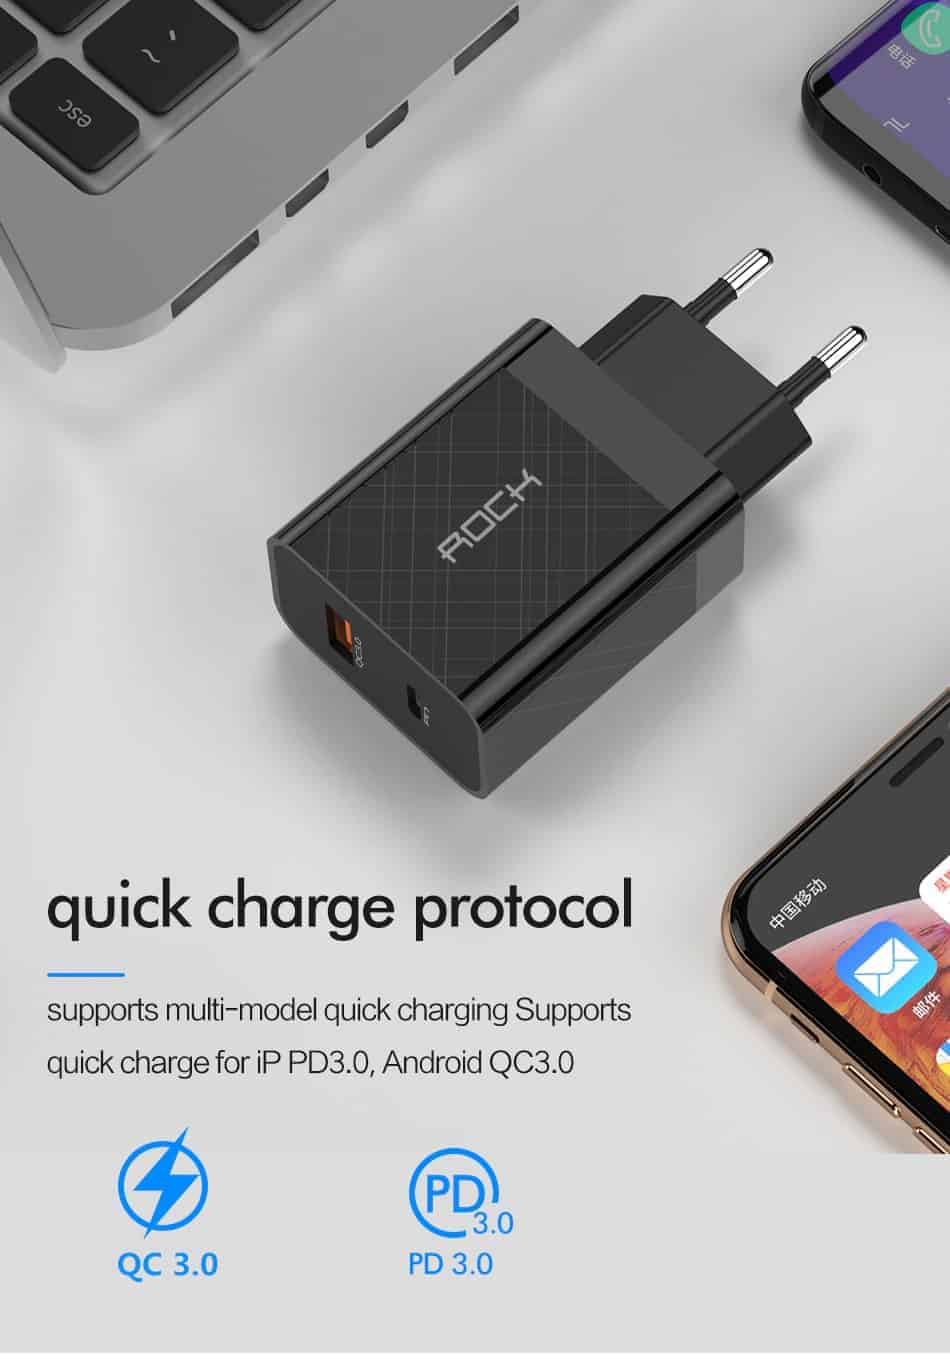 ROCK Quick Charge 4.0 36W QC PD 3.0 Phone Charger_quick charge protocol